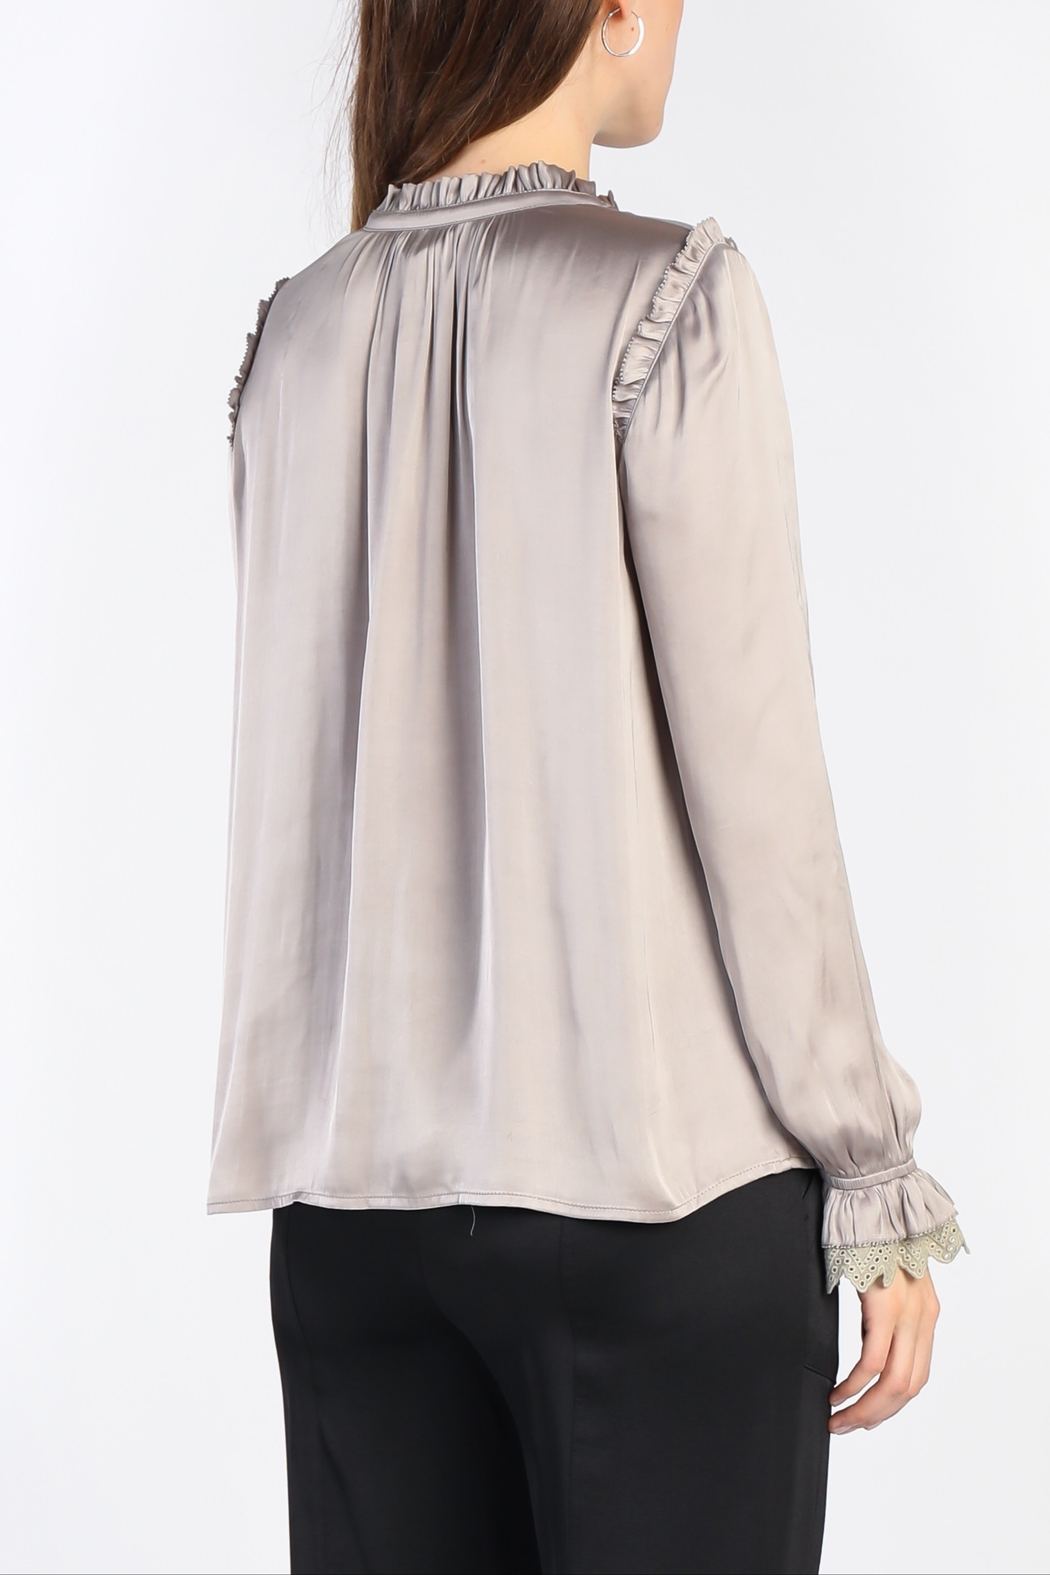 Current Air Ruffled V Tie Neck Lace Trim Blouse - Front Full Image